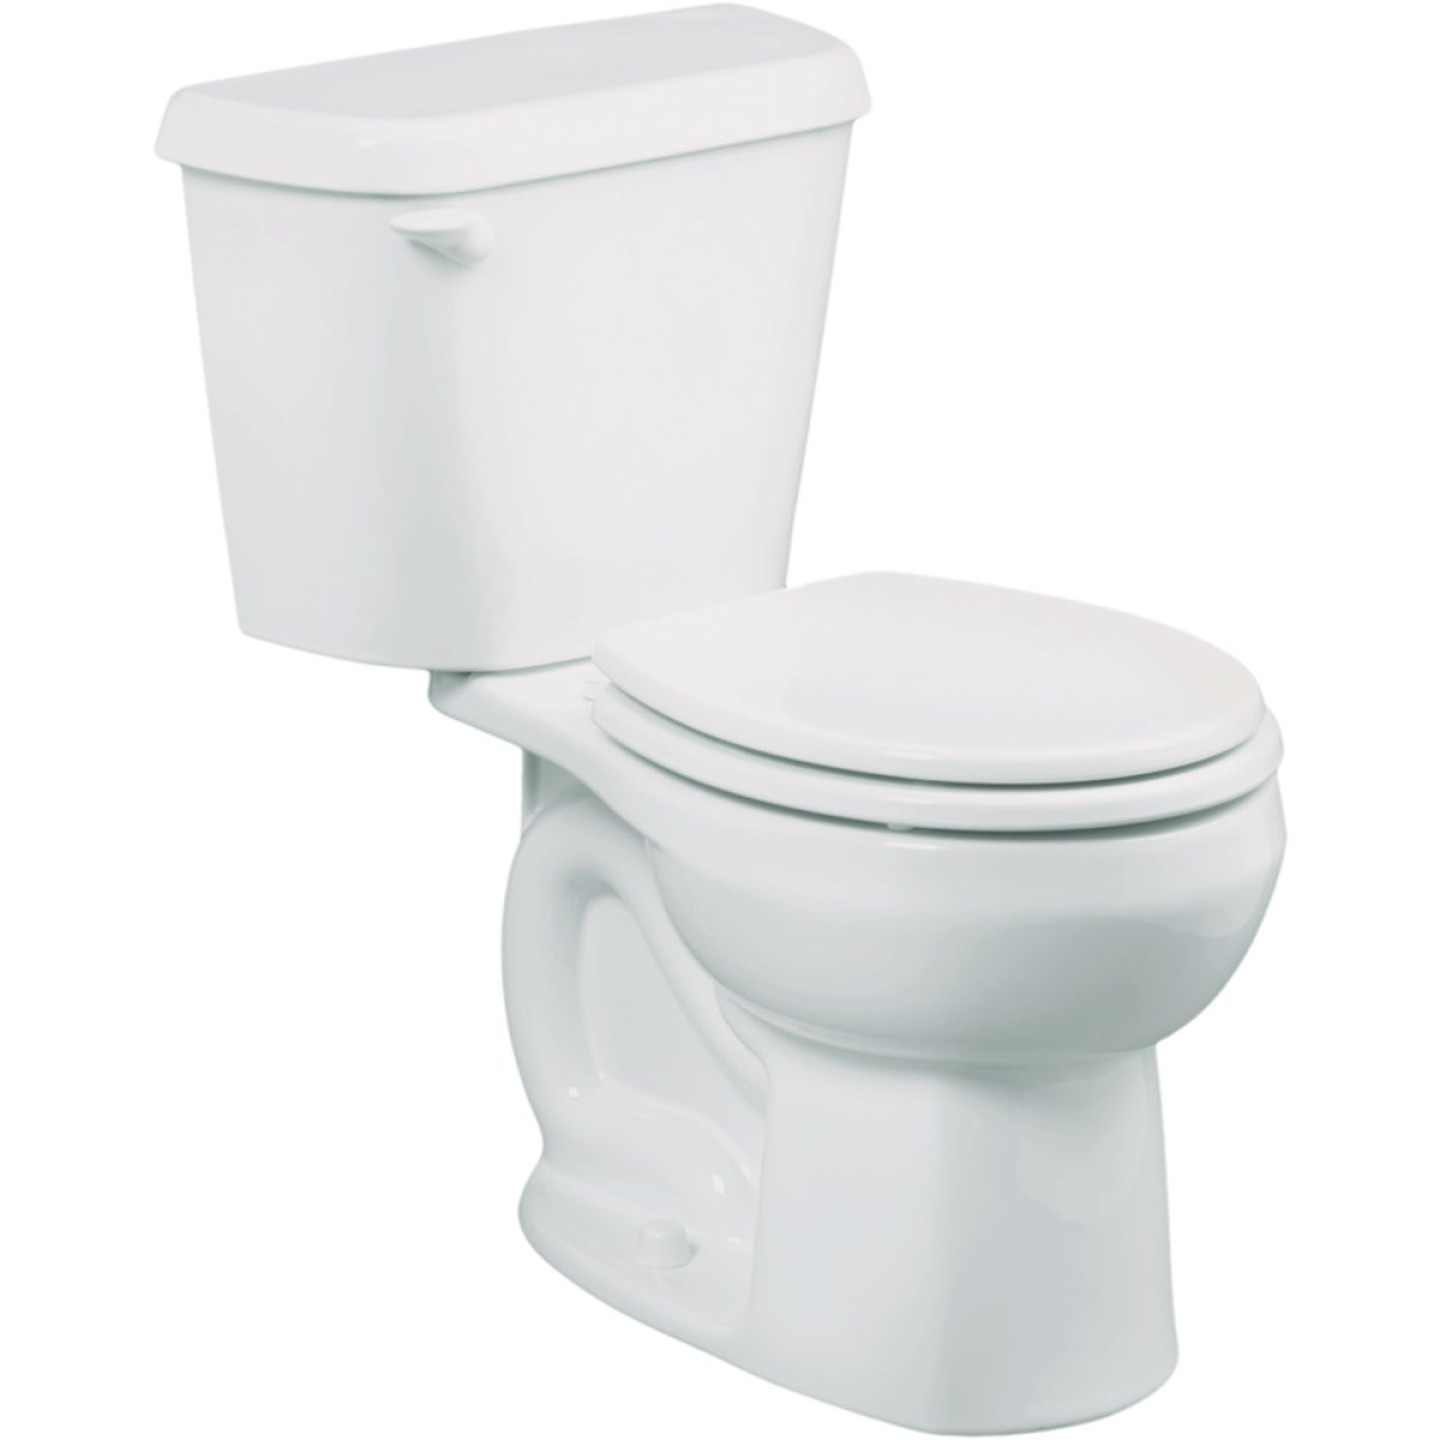 American Standard Colony White Round Bowl 1.6 GPF Complete Toilet Image 1